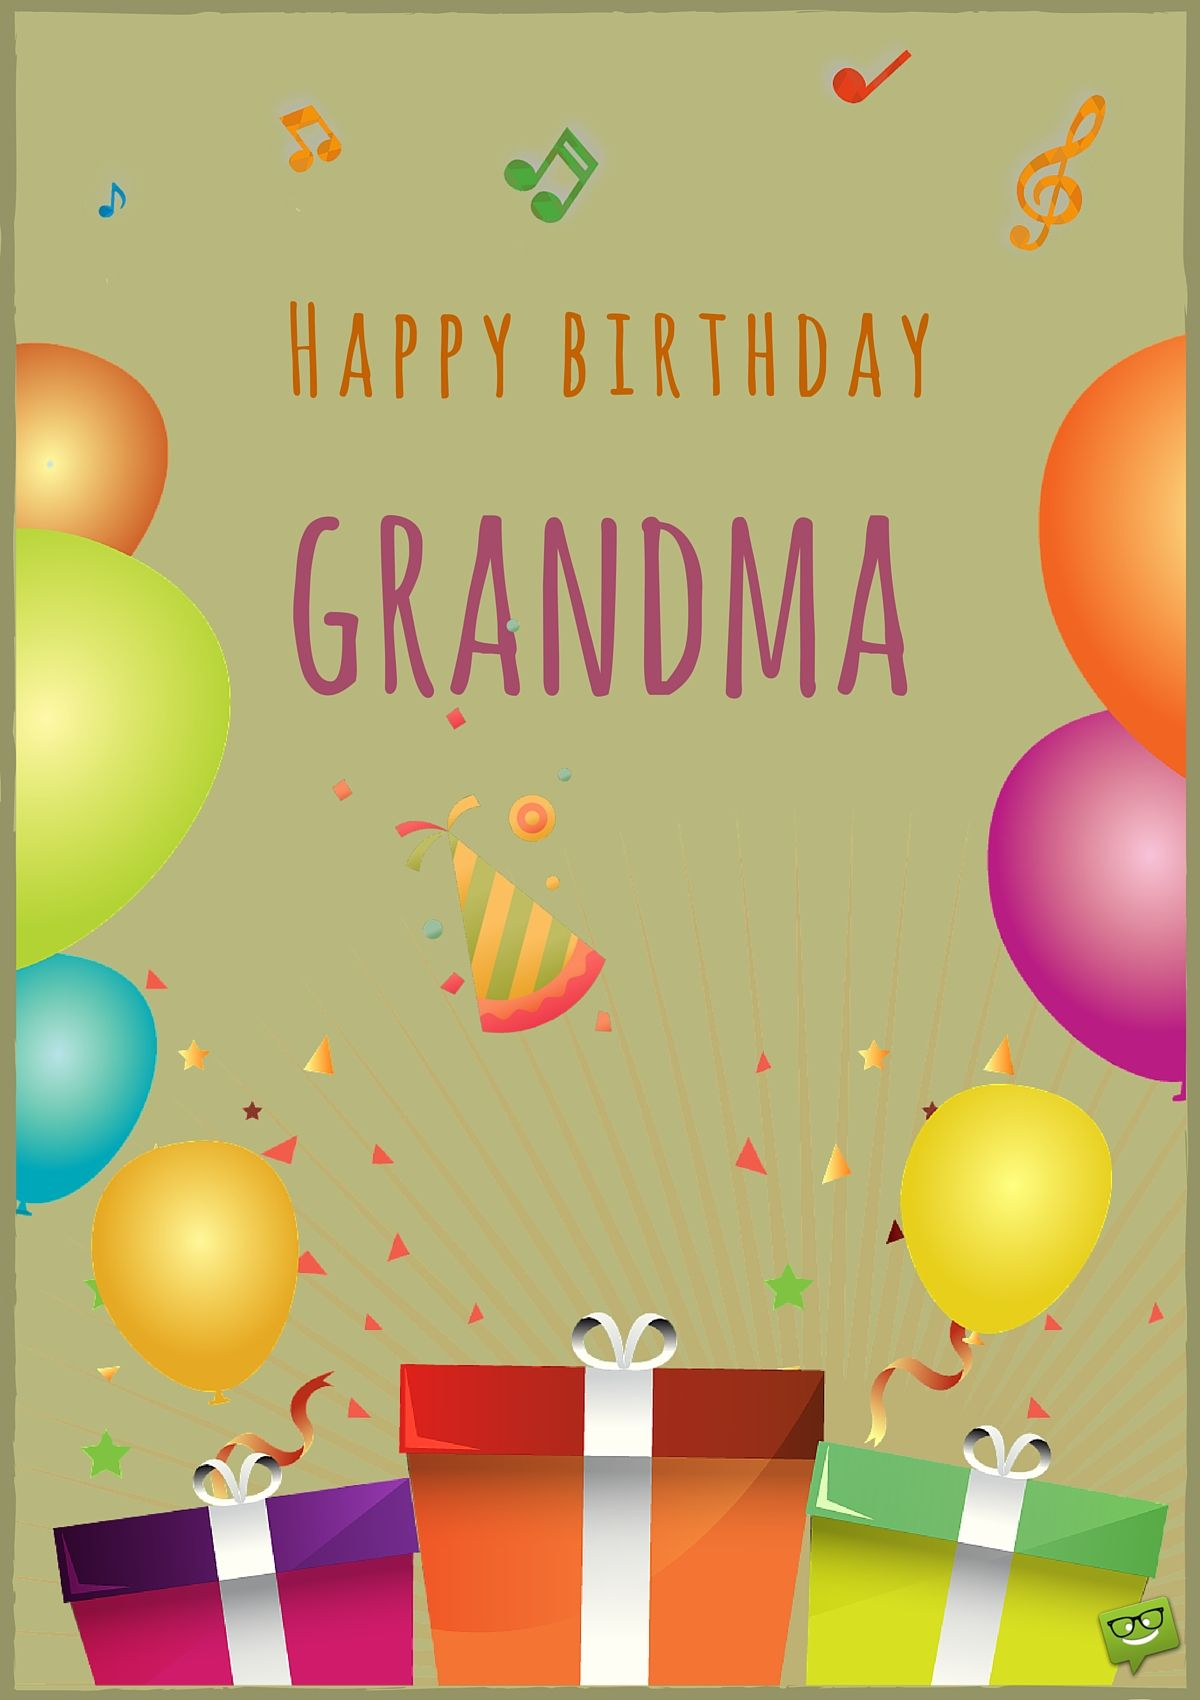 Happy Birthday Card For Grandma With Image Of Balloons And Birthday